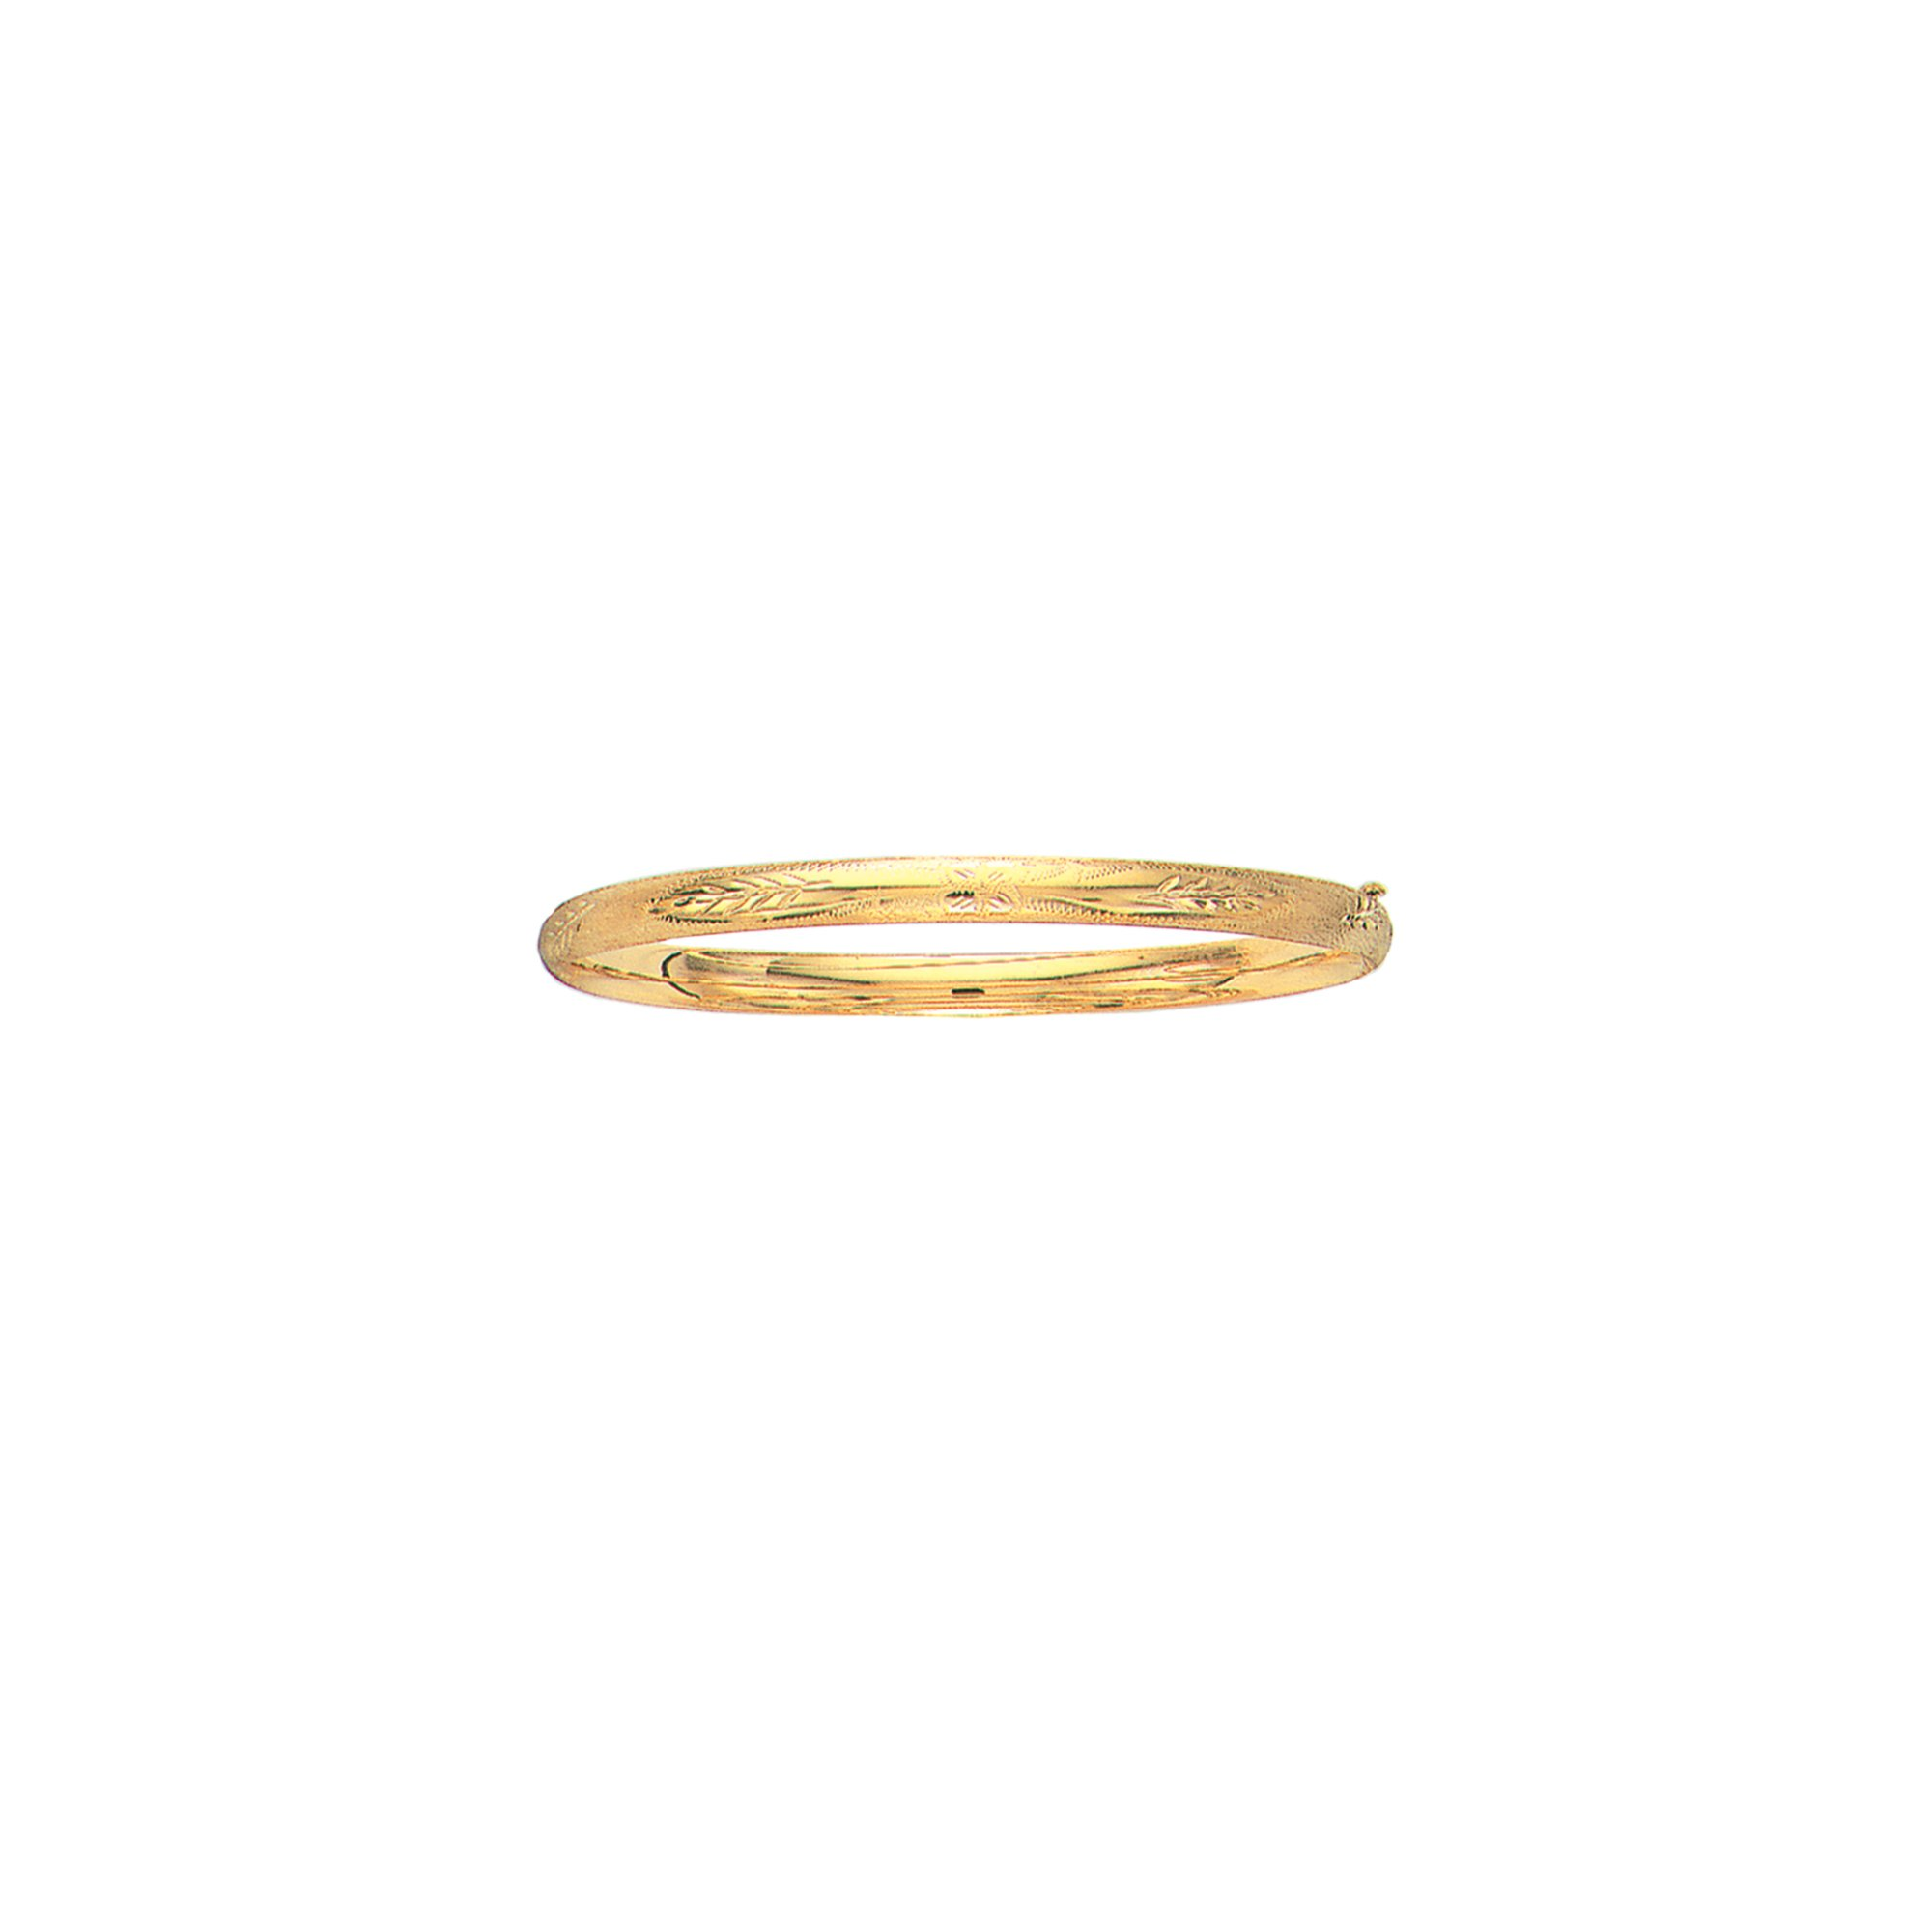 14K Yellow Solid Gold Florentine Round Dome Classic 5mm Wide Bangle 8'' Bracelet Flower Pattern with Clasp